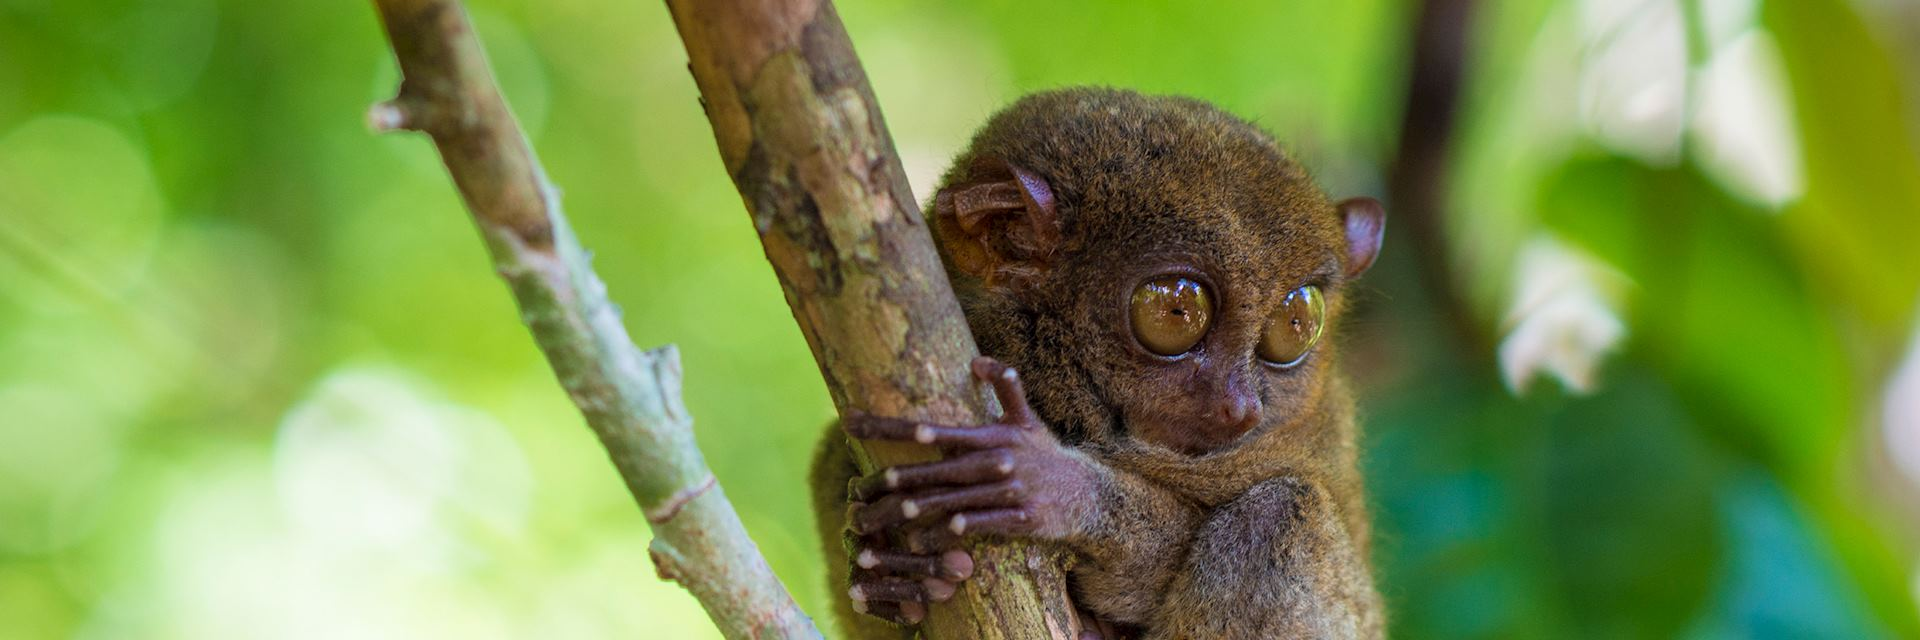 Tarsier, the Philippines